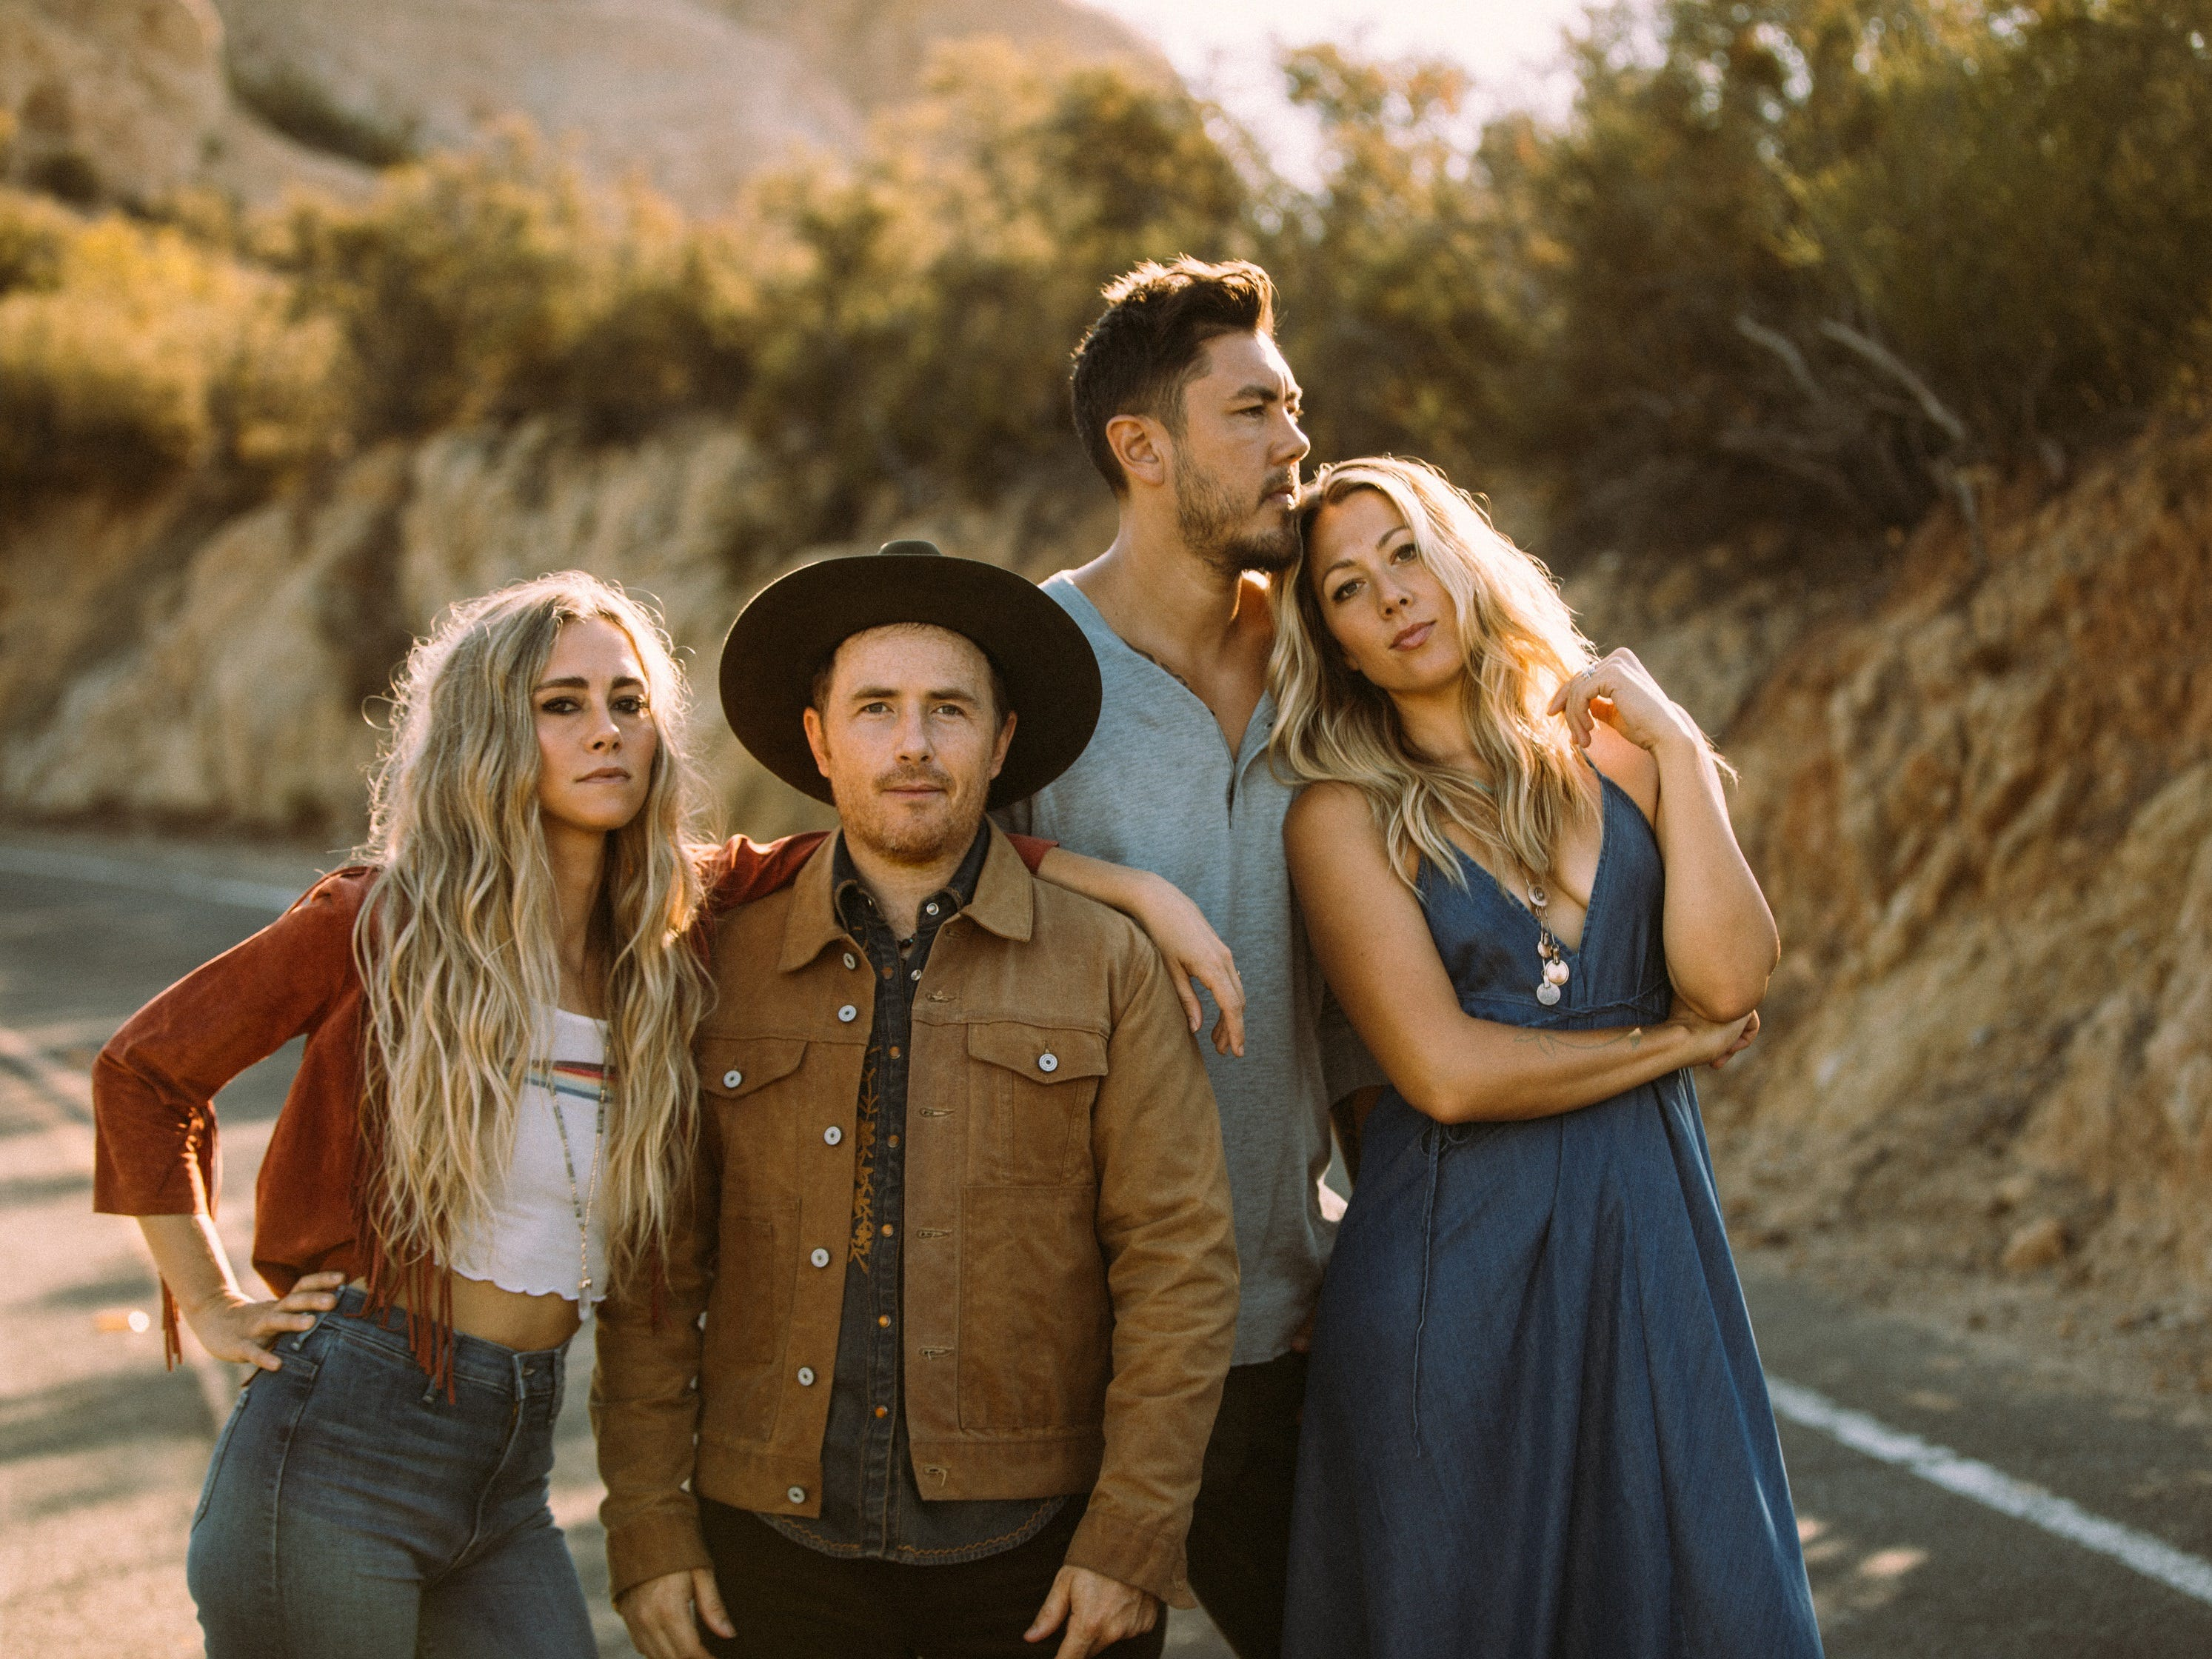 Musician Colbie Caillat, right, will perform at the Borderline Strong concert Feb. 11 in Thousand Oaks with her band Gone West, which includes  Nelly Joy, from left, Jason Reeves and Justin Young.